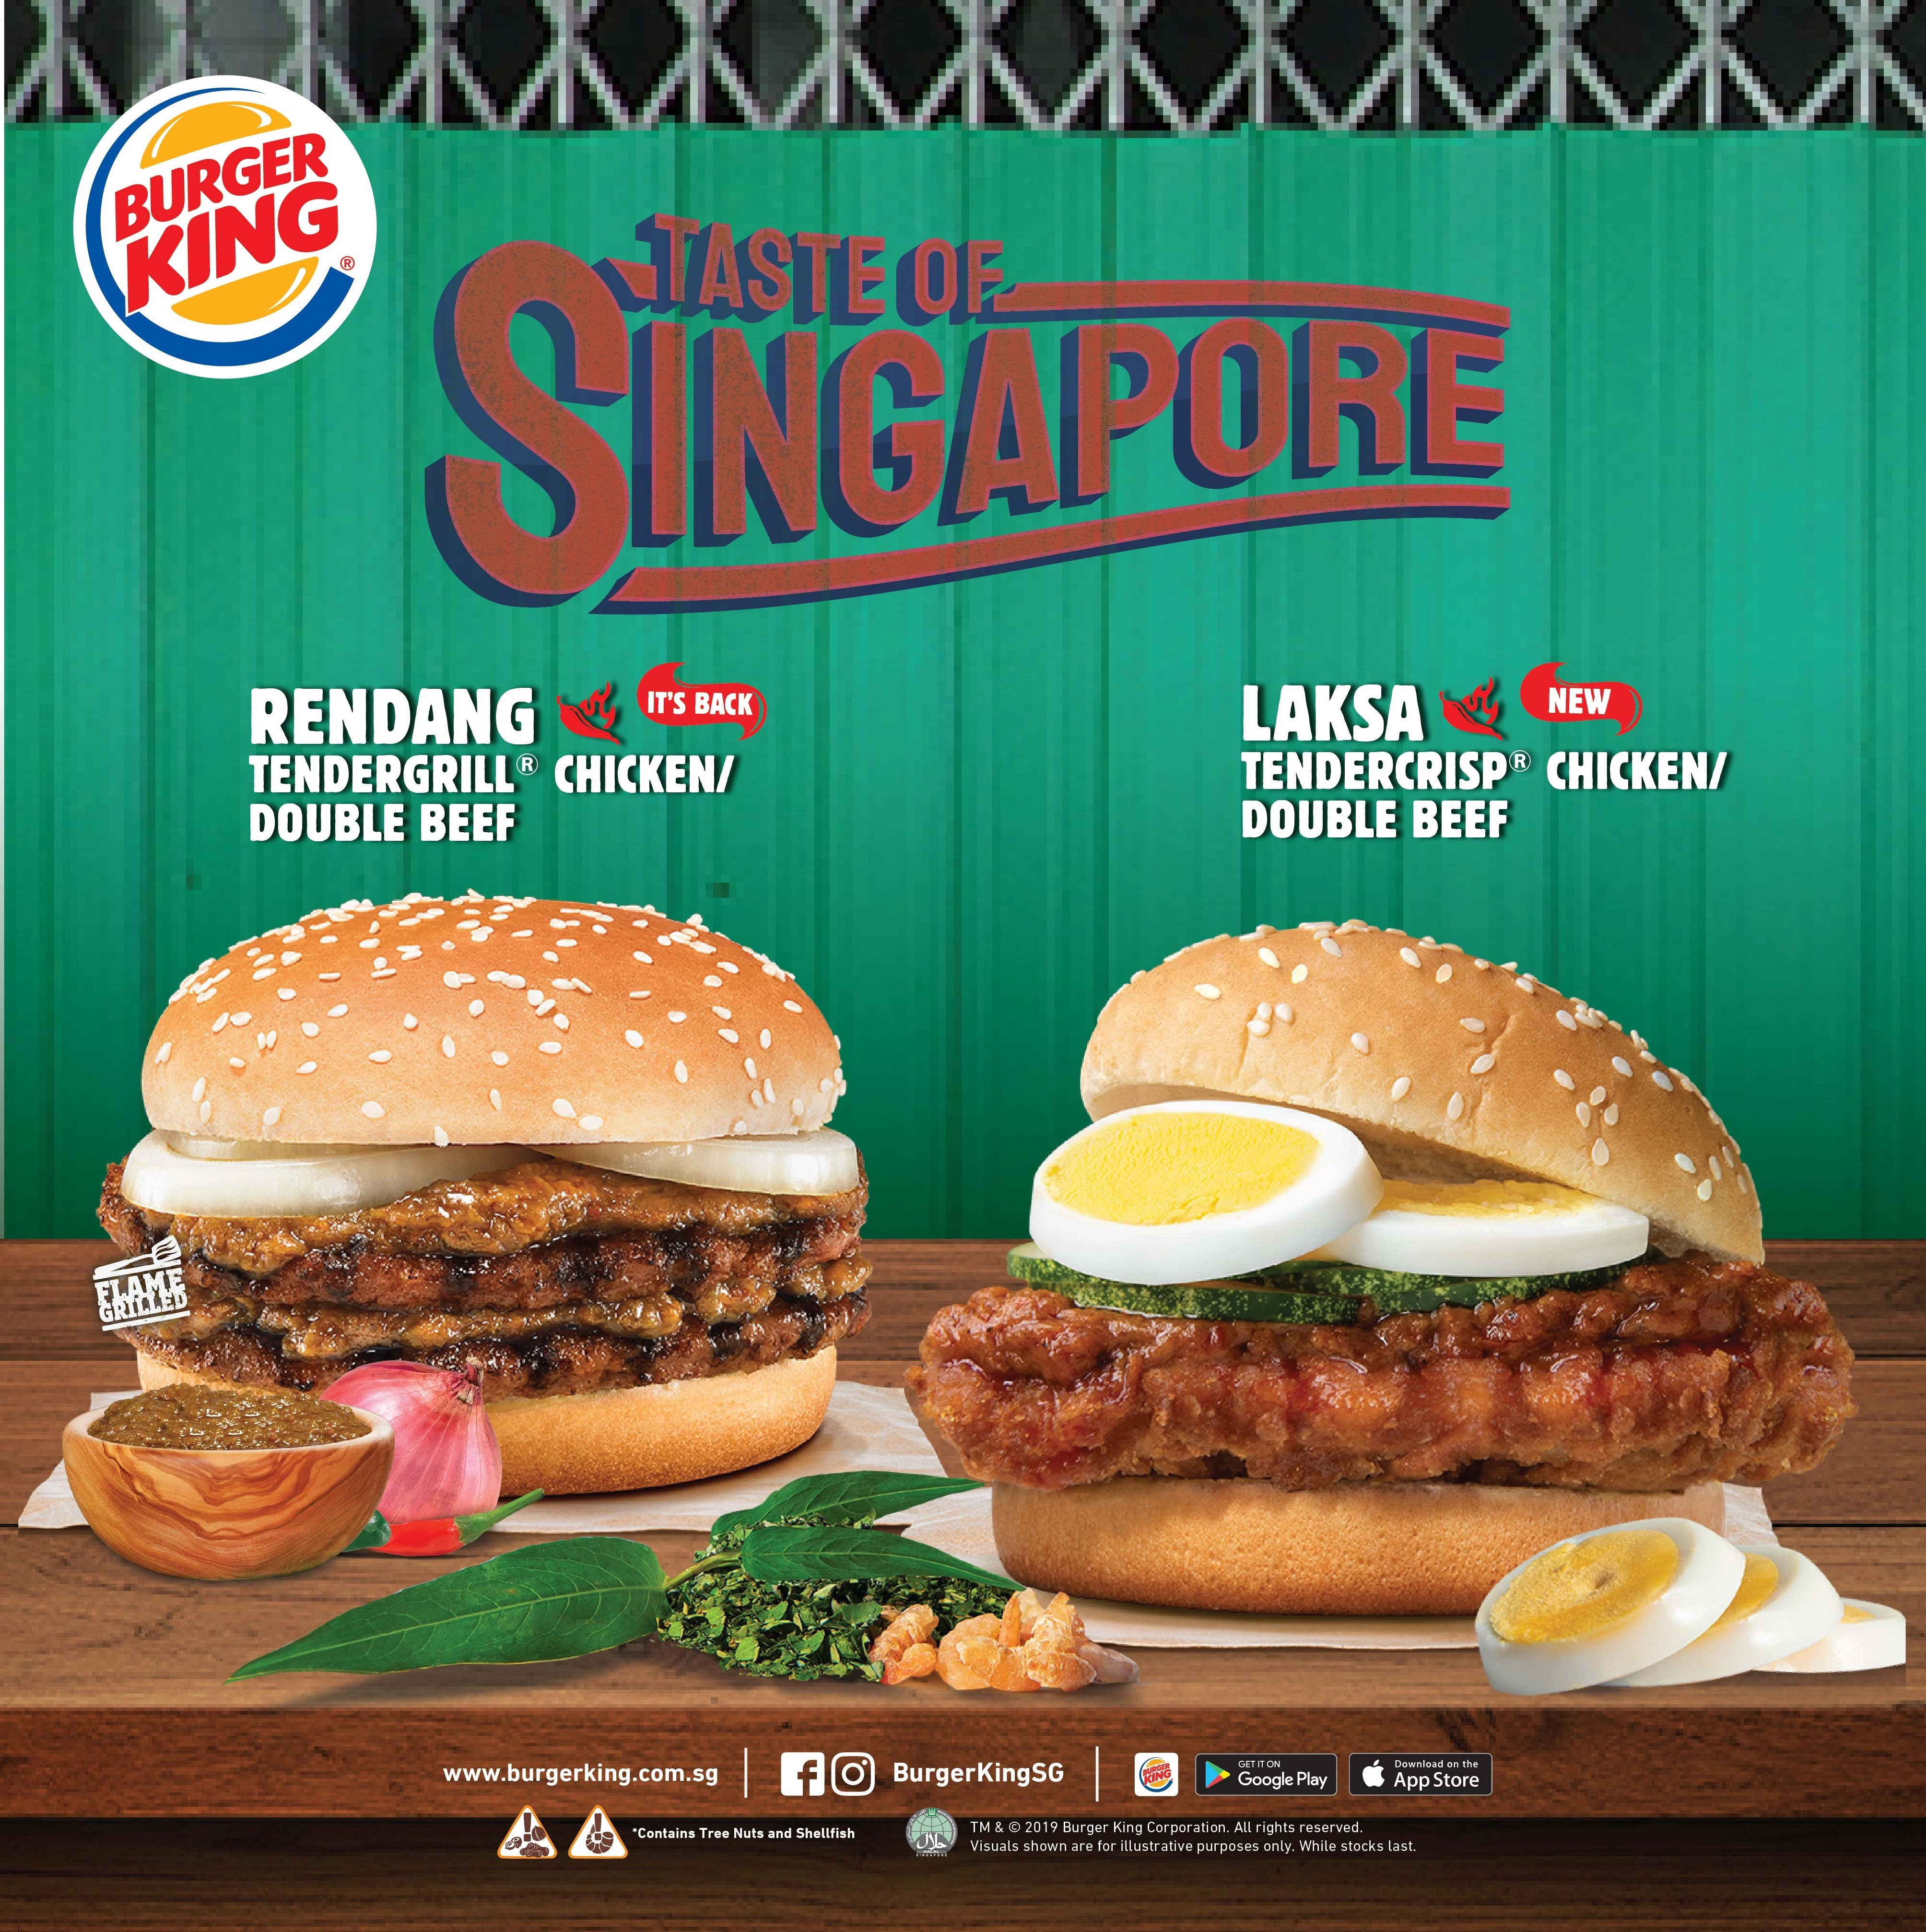 Savour the delicious taste of Singapore with the Laksa and Rendang burgers at BURGER KING®